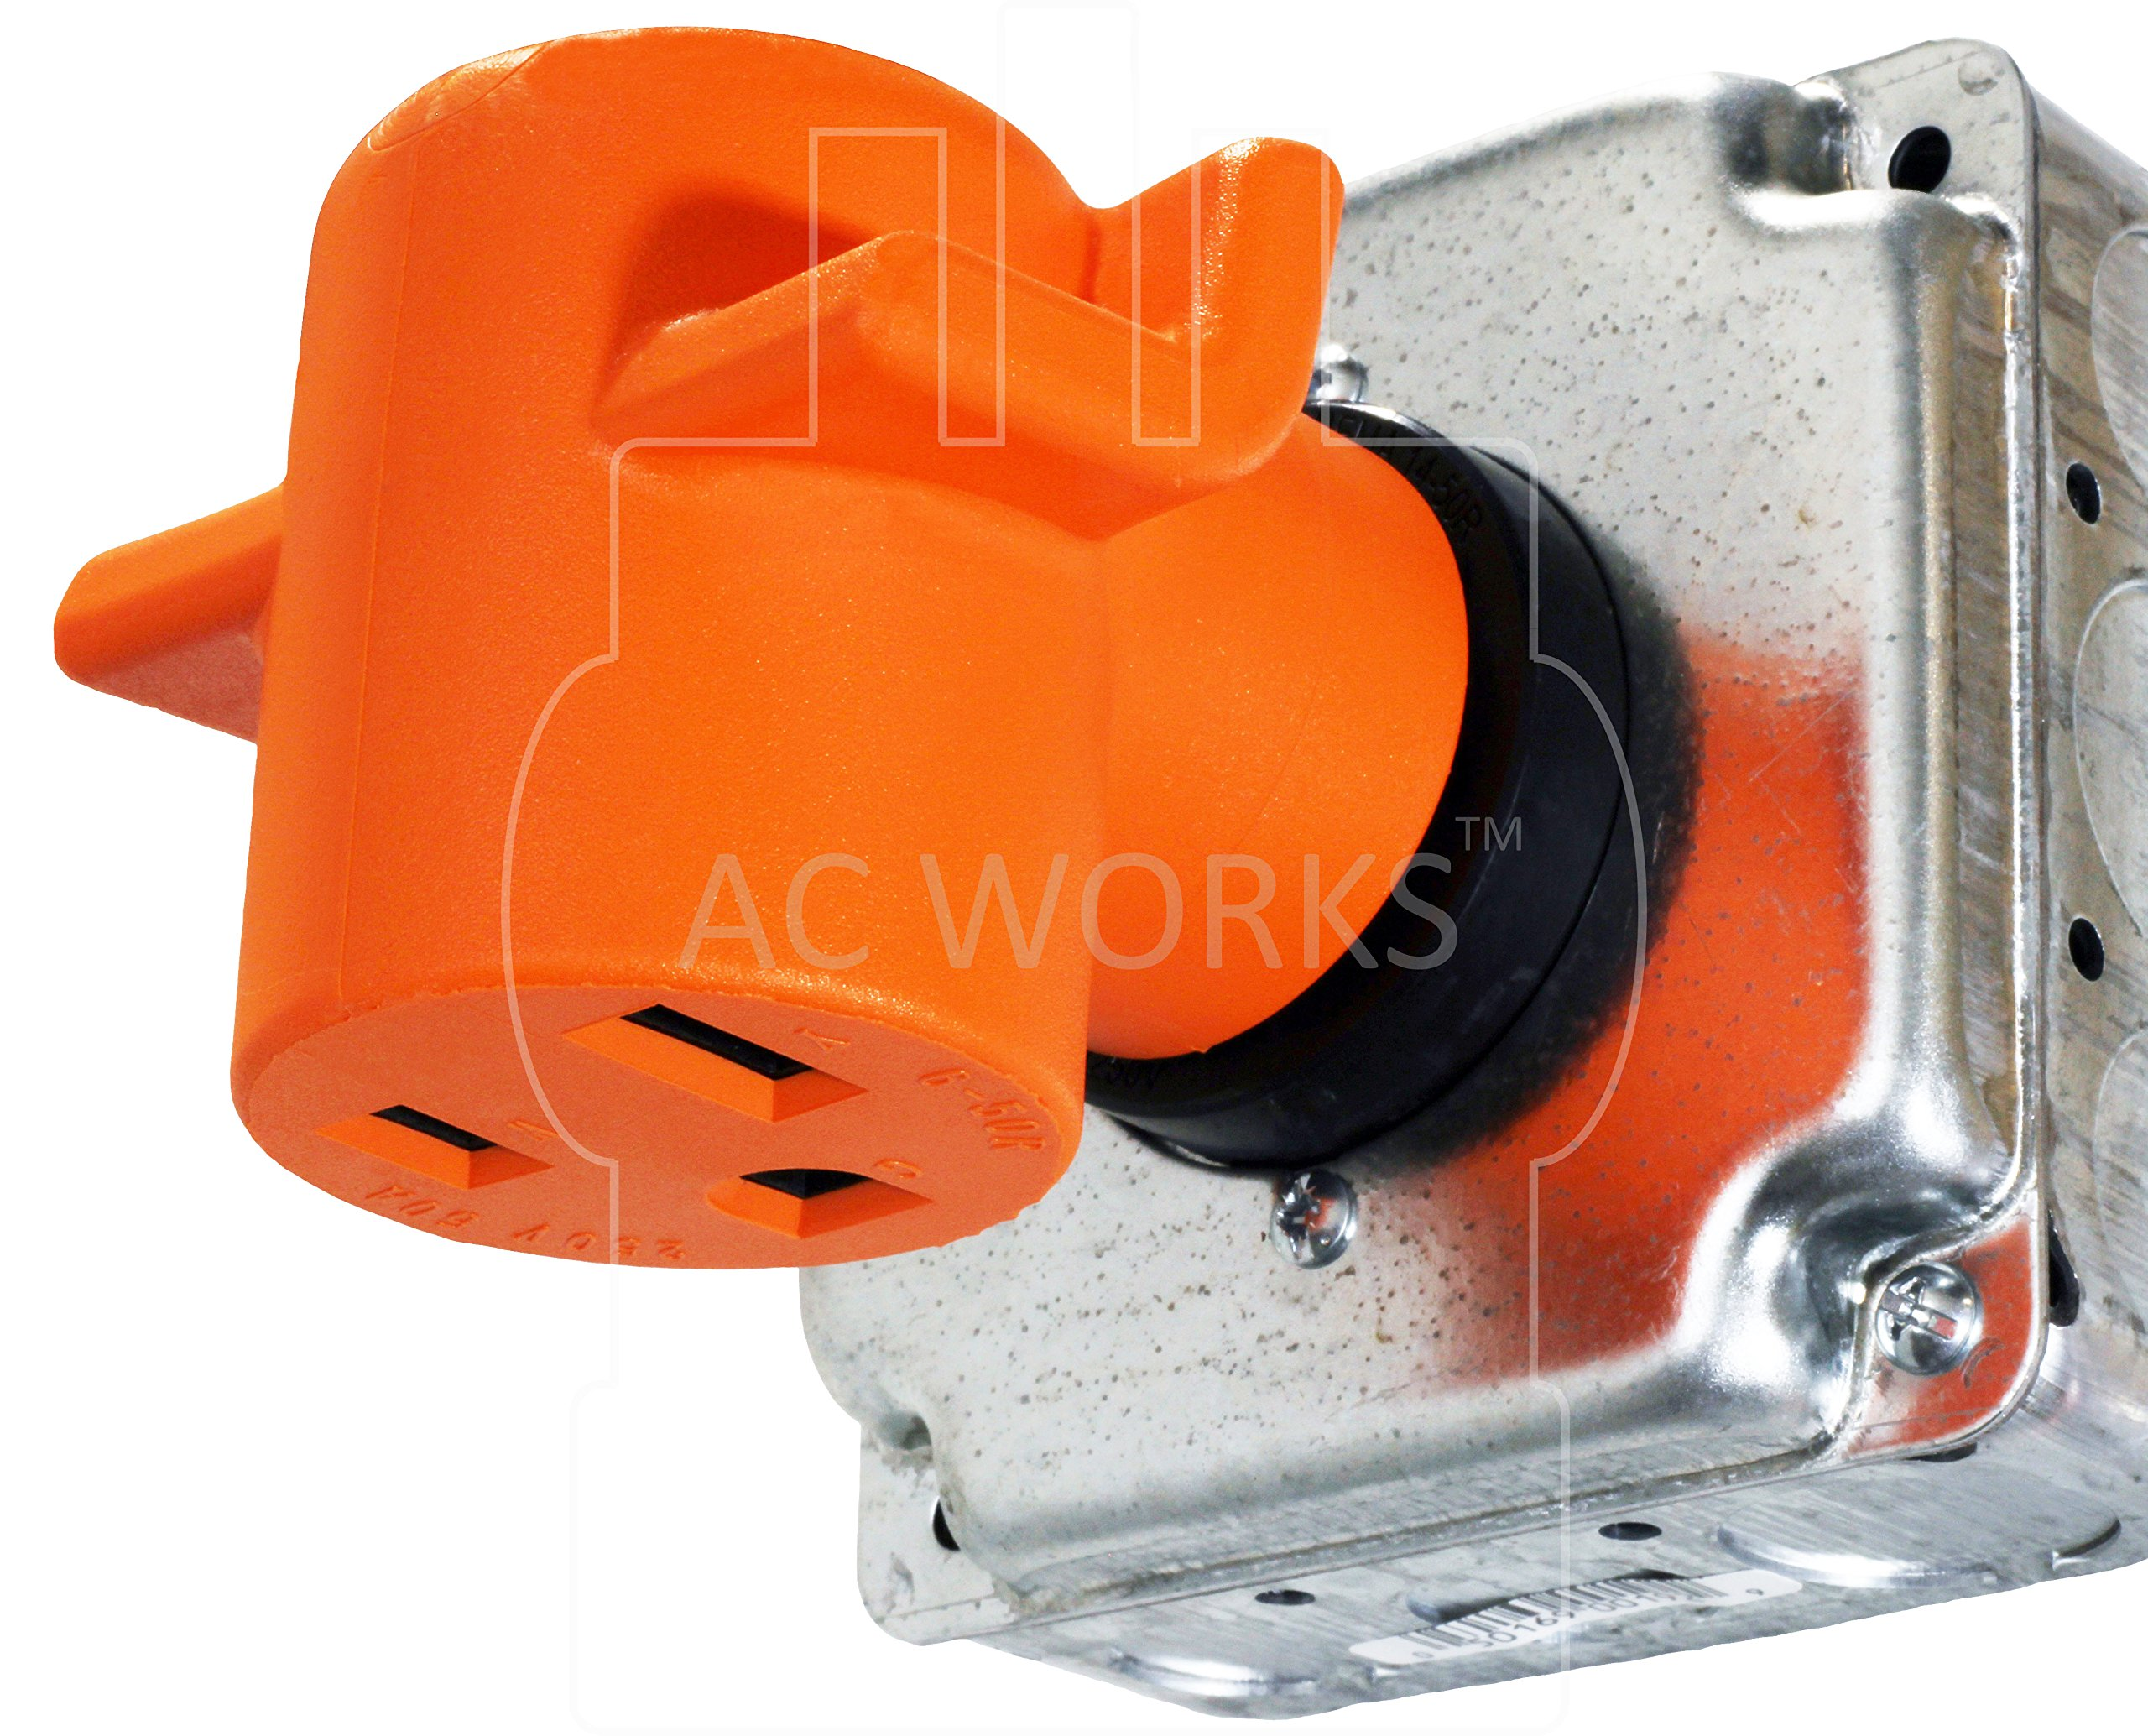 AC WORKS [WD1030650] NEMA 10-30 3-Prong Dryer Plug to 6-50 Welder Adapter by AC WORKS (Image #6)